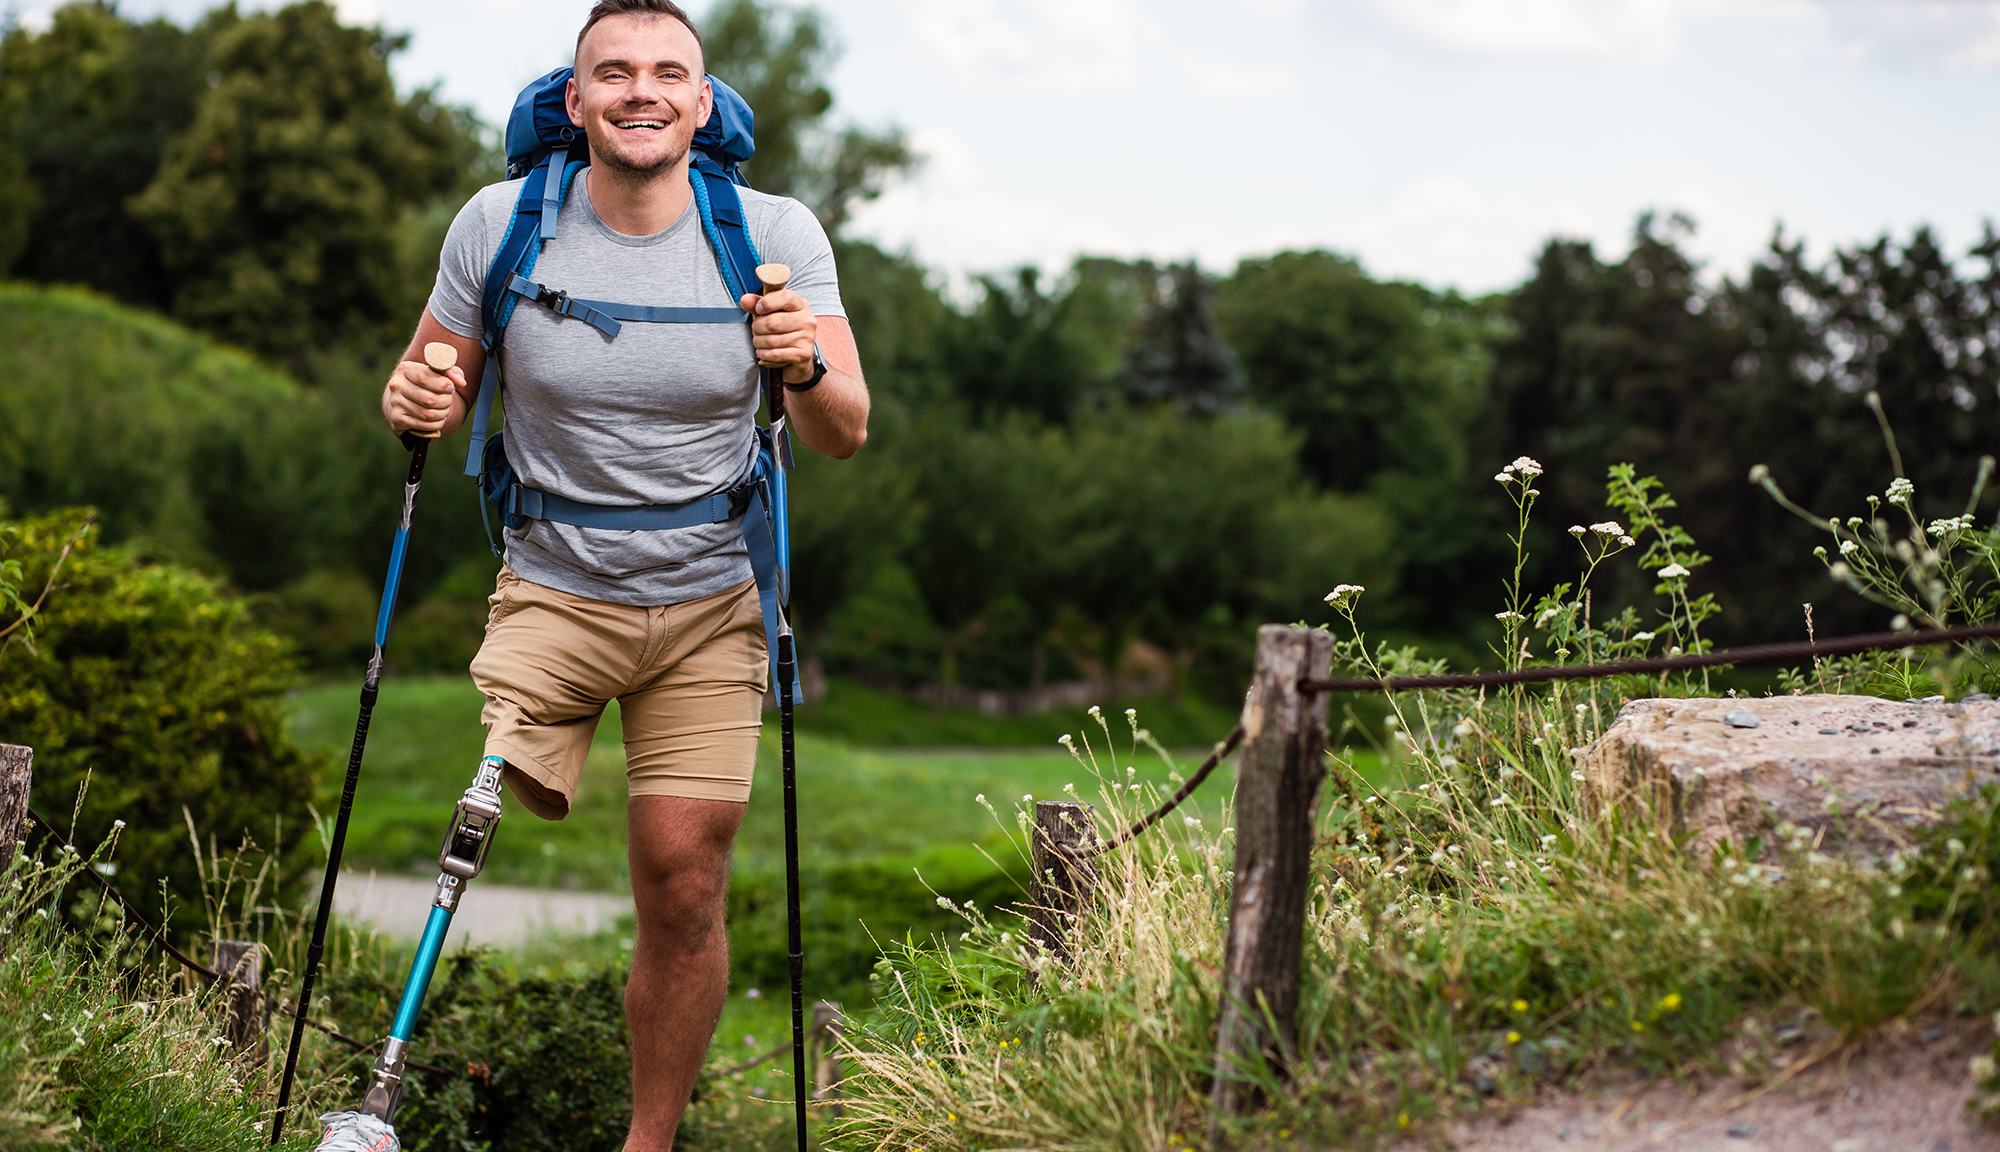 A young man with a prosthetic leg is on a hiking trail. He has a big backpack, two hiking sticks and a very happy smile.